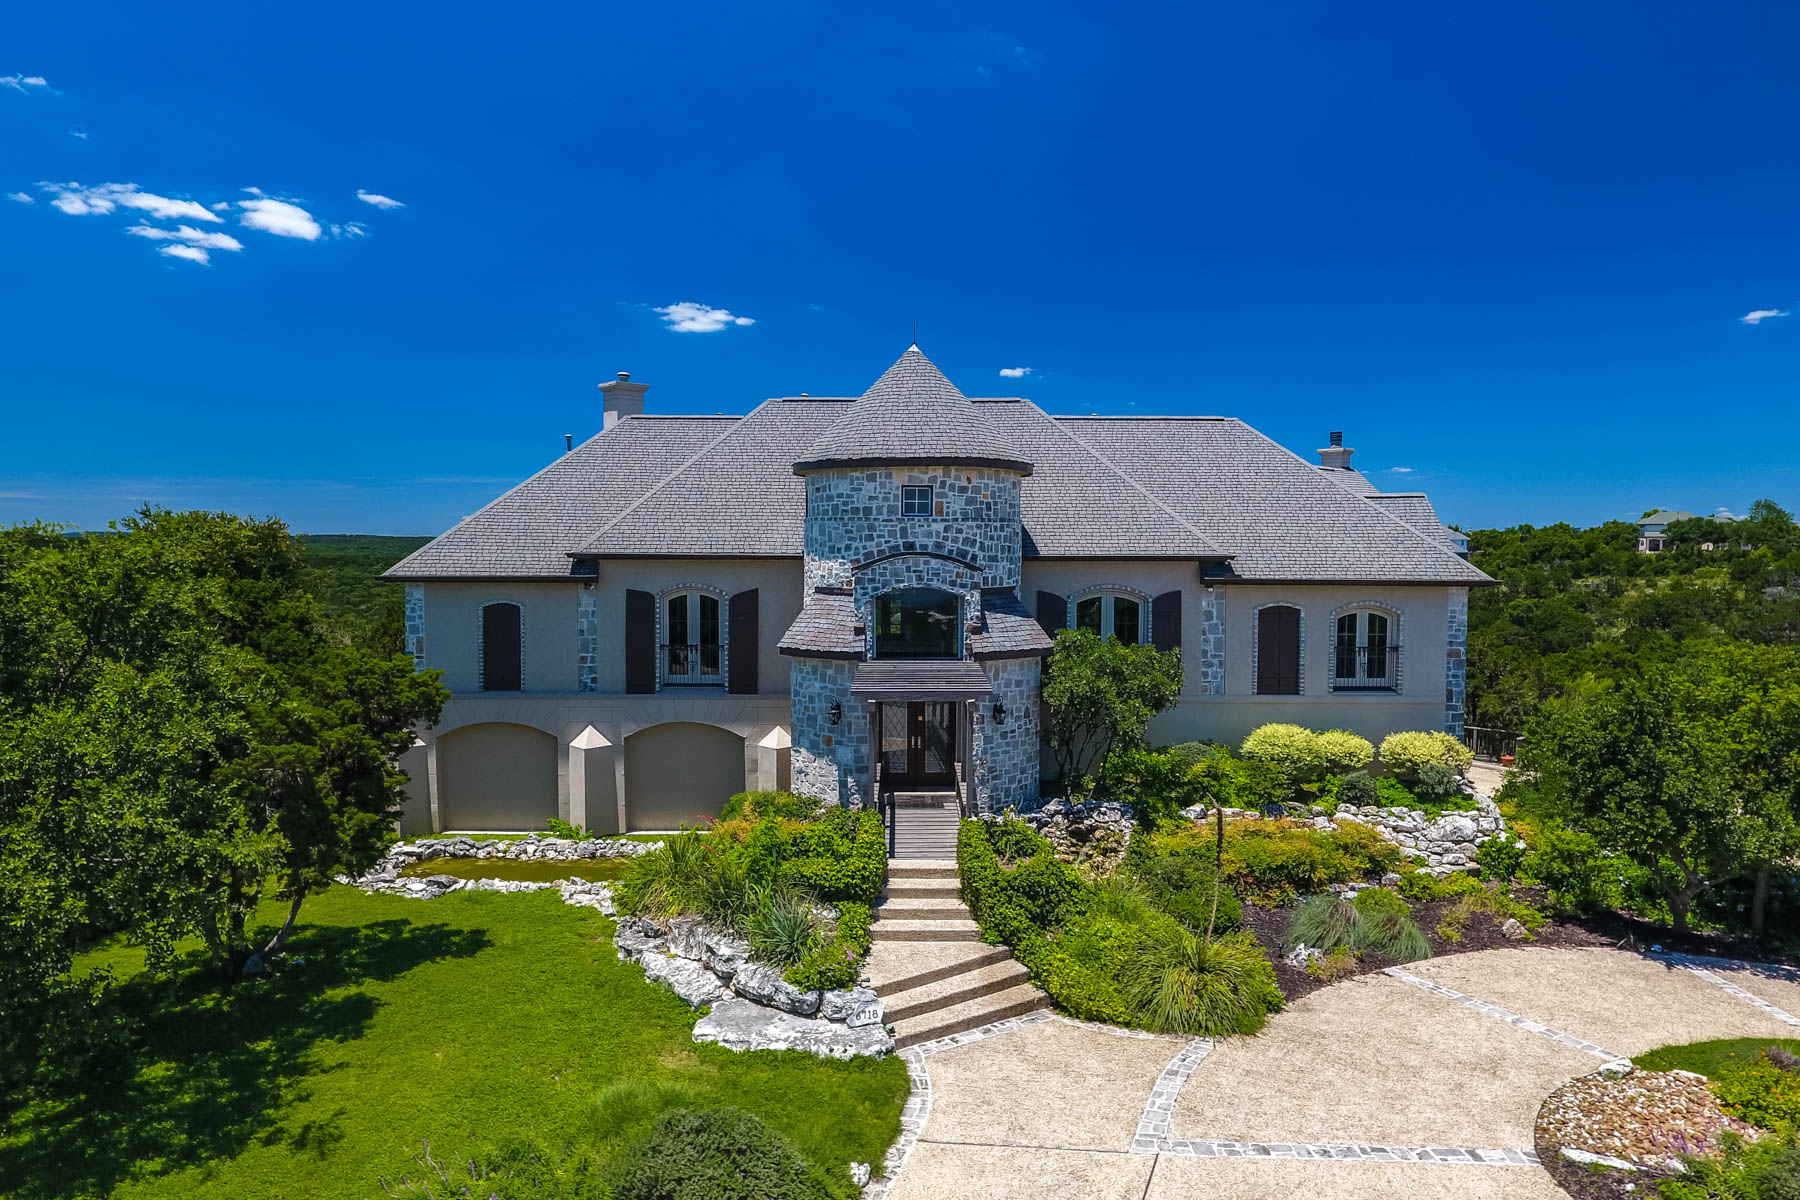 Additional photo for property listing at Breathtaking Estate in Crownridge 6718 Wagner Way San Antonio, Texas 78256 United States